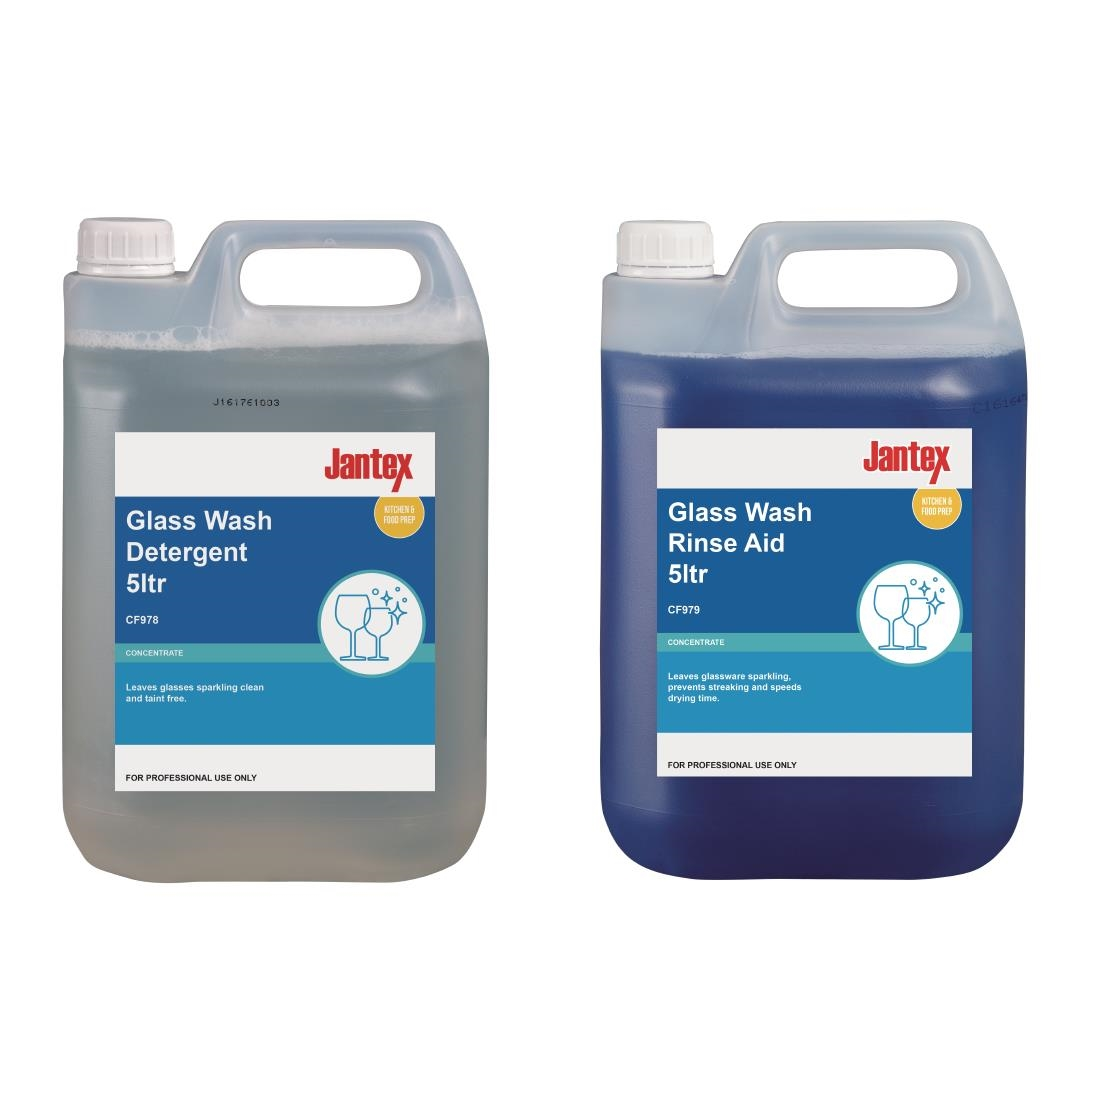 Image of Jantex Glasswasher Detergent and Rinse Aid Concentrate 5Ltr (2 Pack) Pack of 2